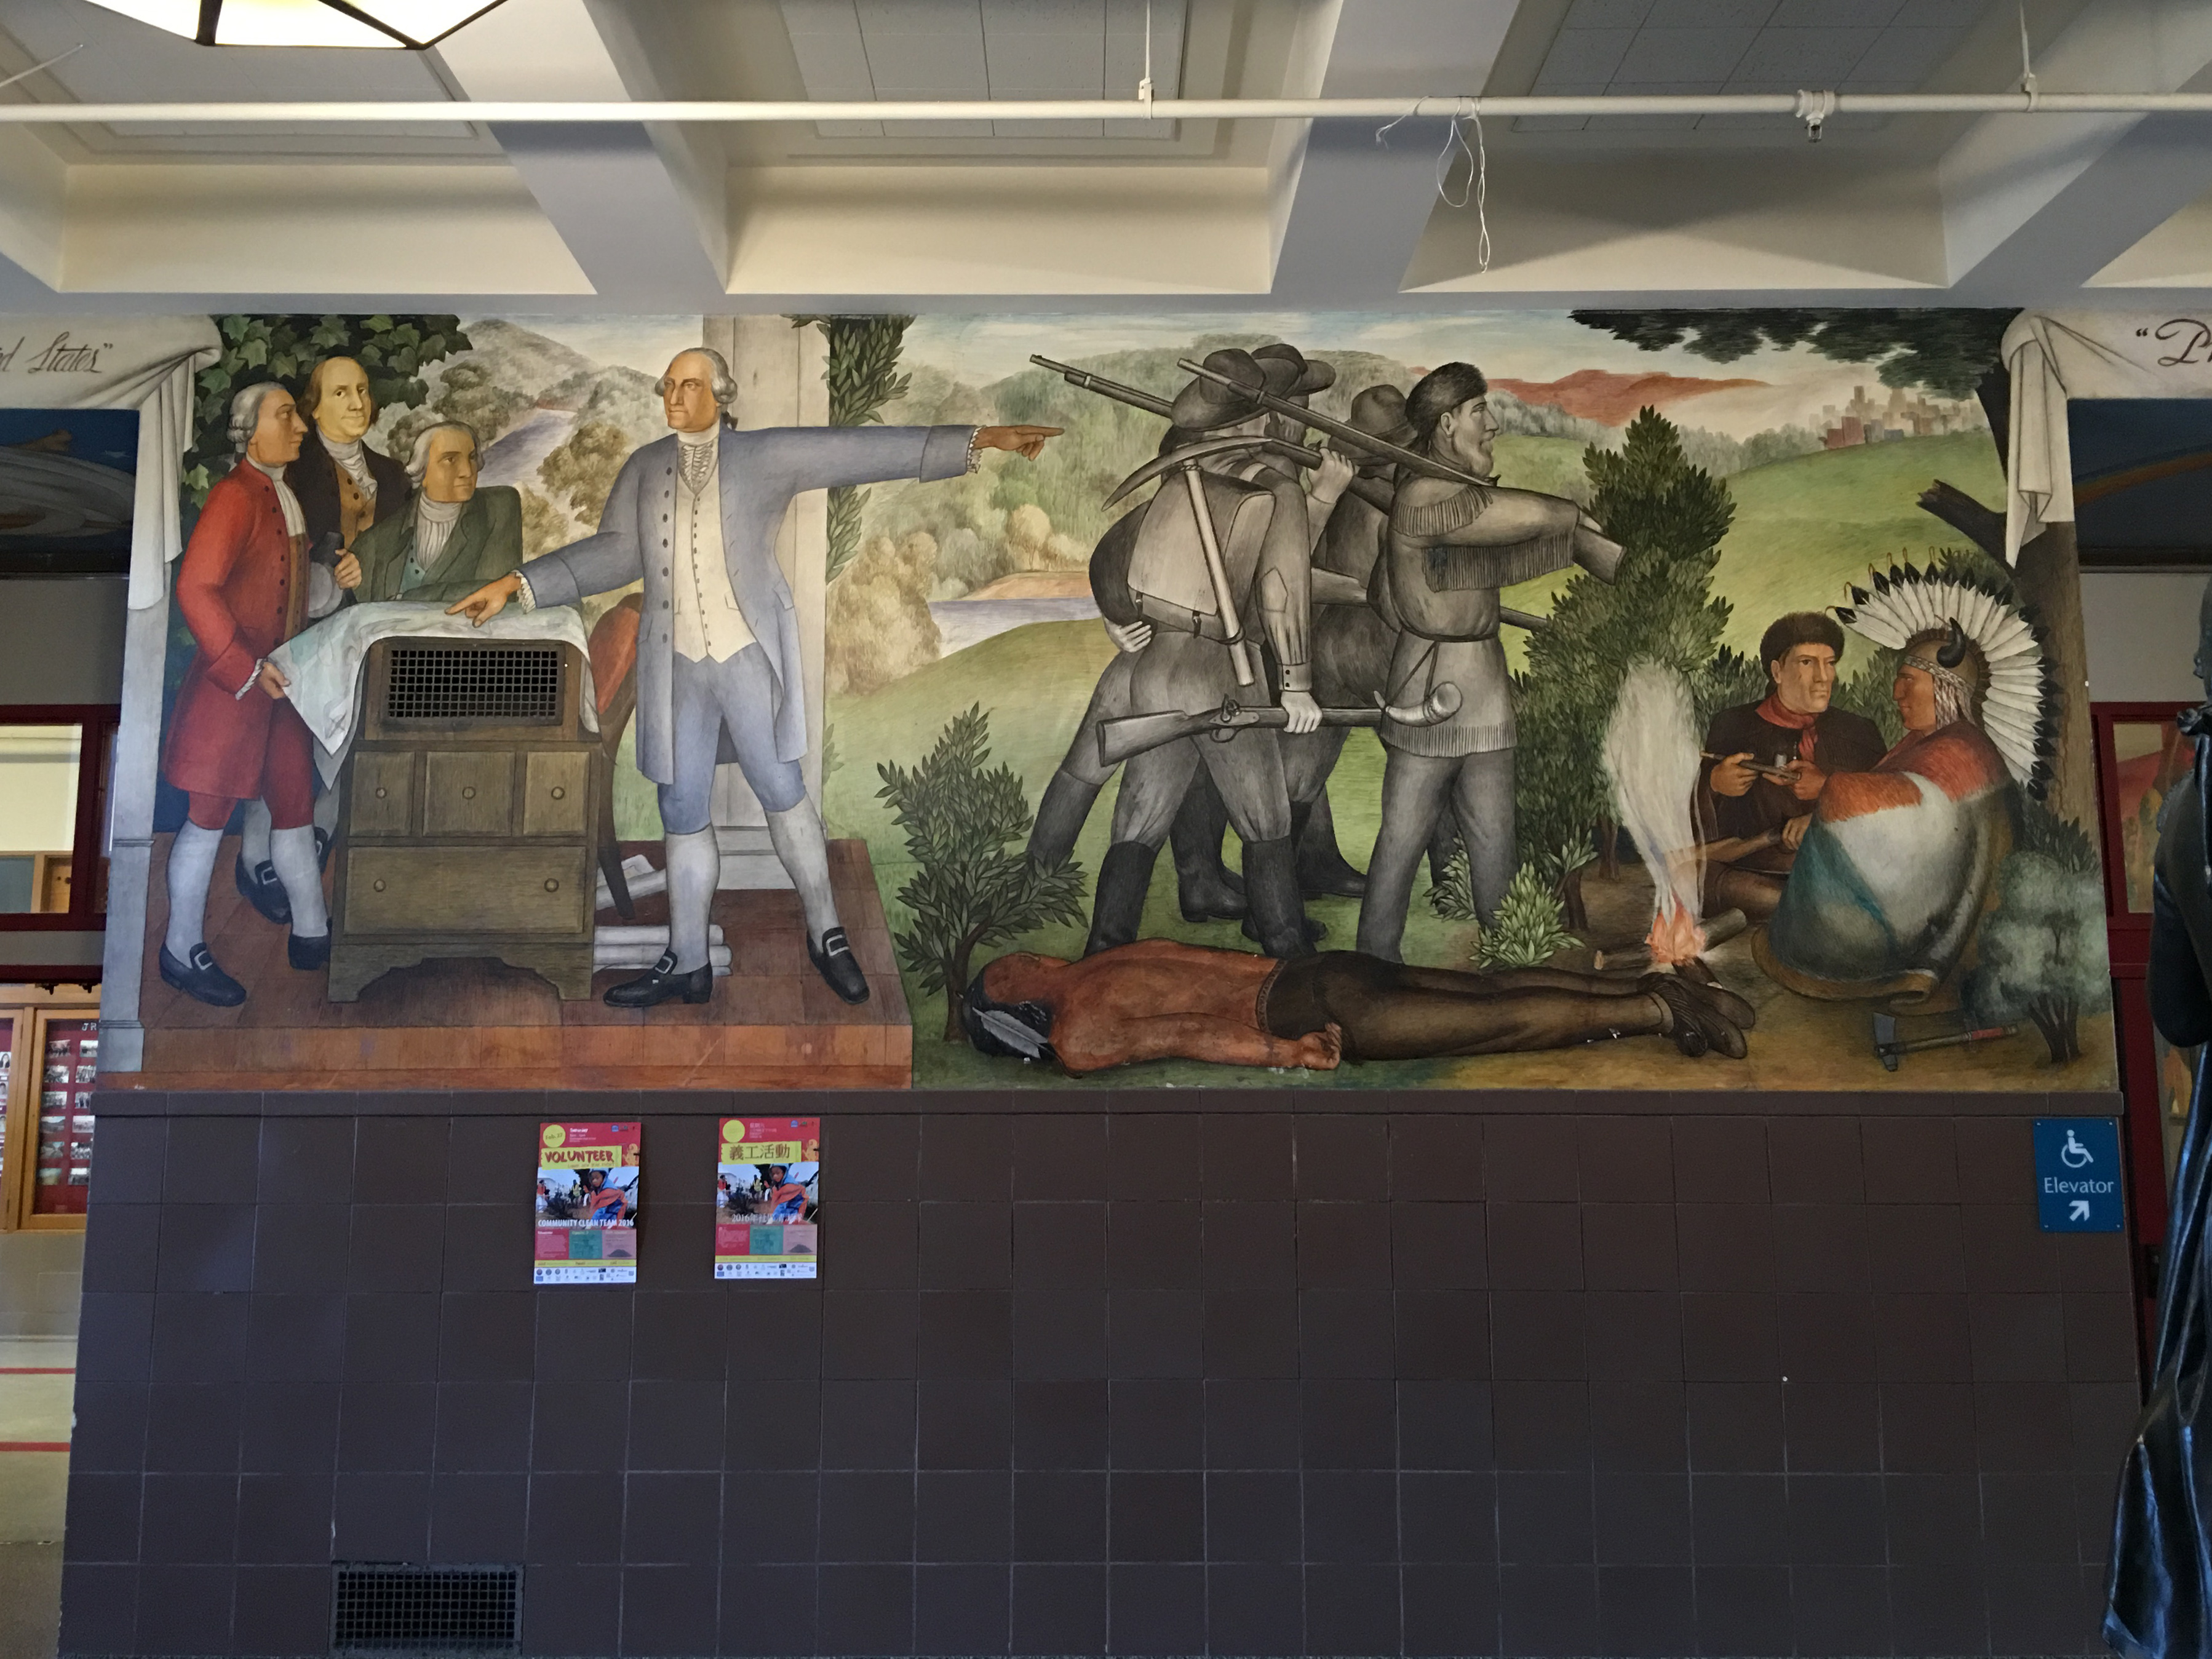 Victor Arnautoff Life of Washington buon fresco murals: Washington points the way west as Benjamin Franklin gives side-eye, ghostly frontiersmen annihilates the Native American way of life, leading to a modern metropolis at top right. Credit: Tammy Aramia